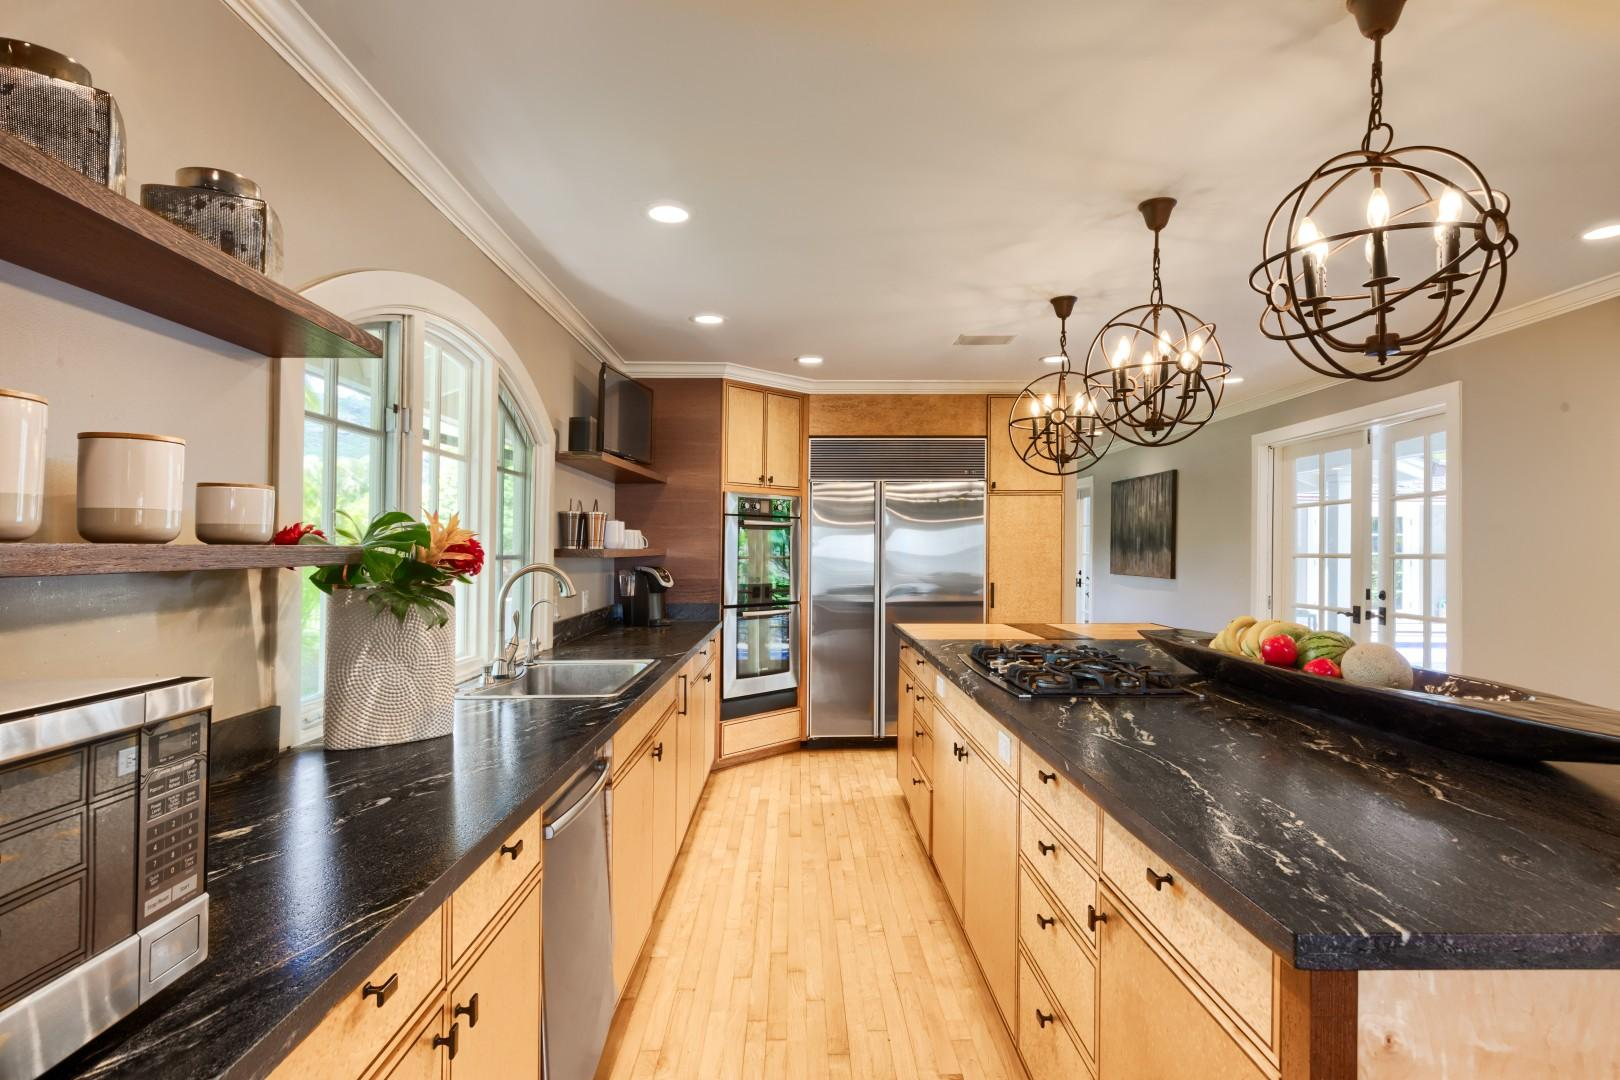 The kitchen is ultimately built for a private chef to whip you up a five star meal!  All serving platters, dinnerware and such items are provided.